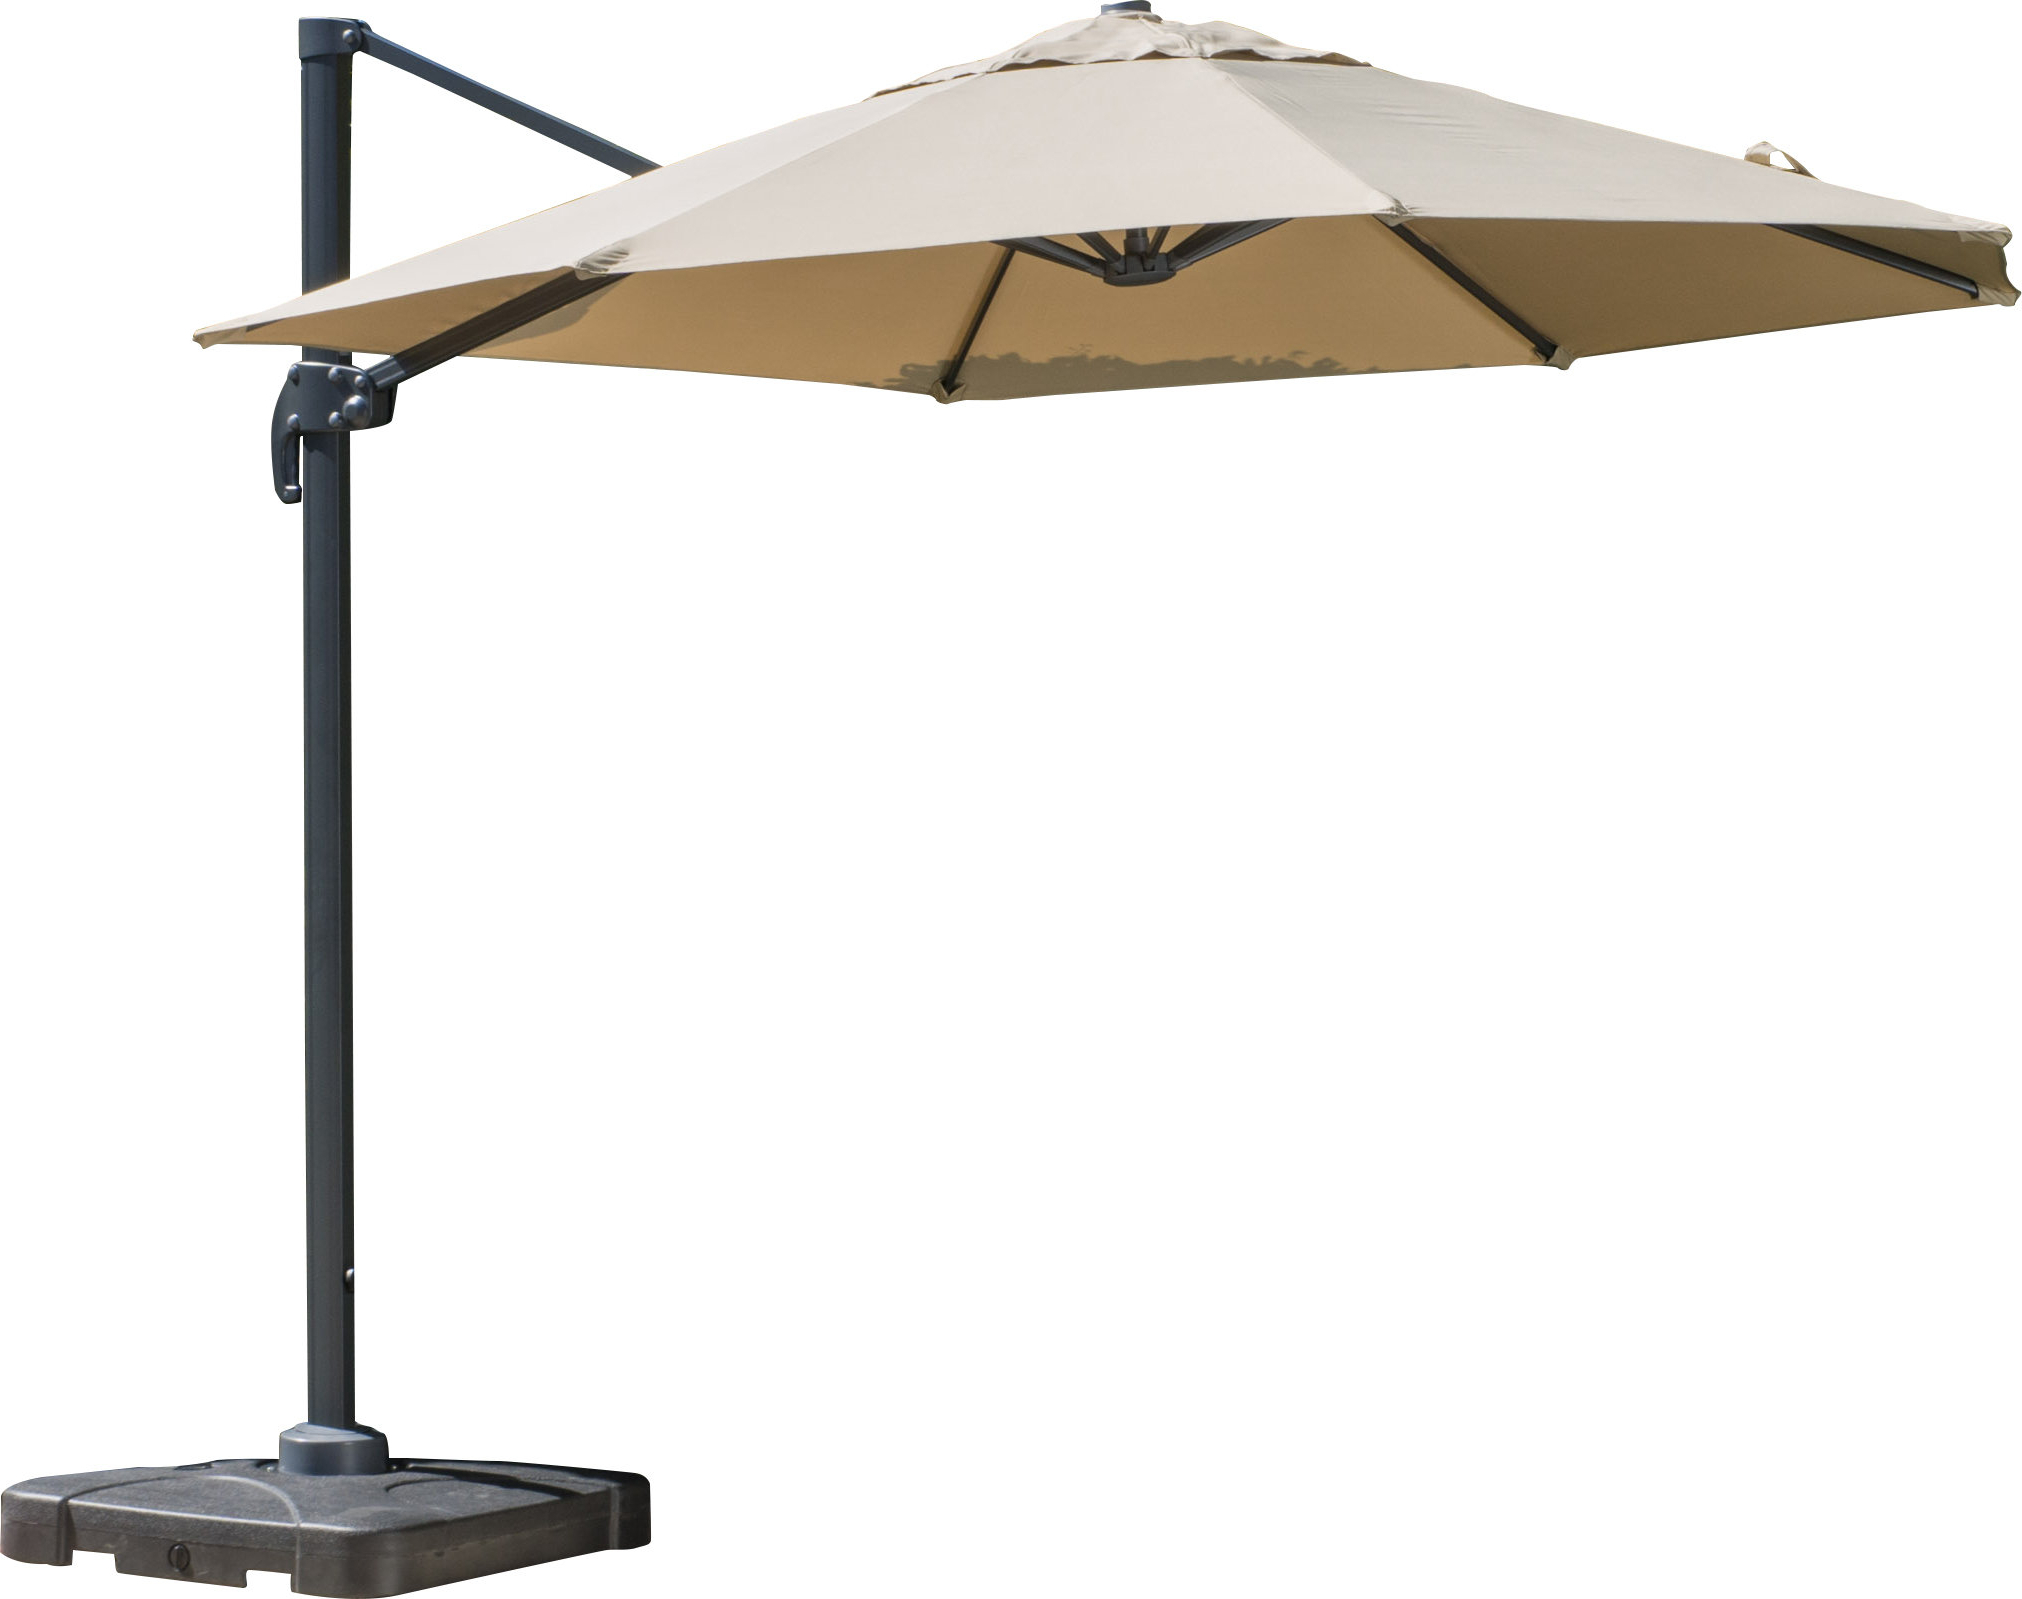 Bellana Cantilever Umbrella In Popular Jaelynn Cantilever Umbrellas (View 9 of 20)